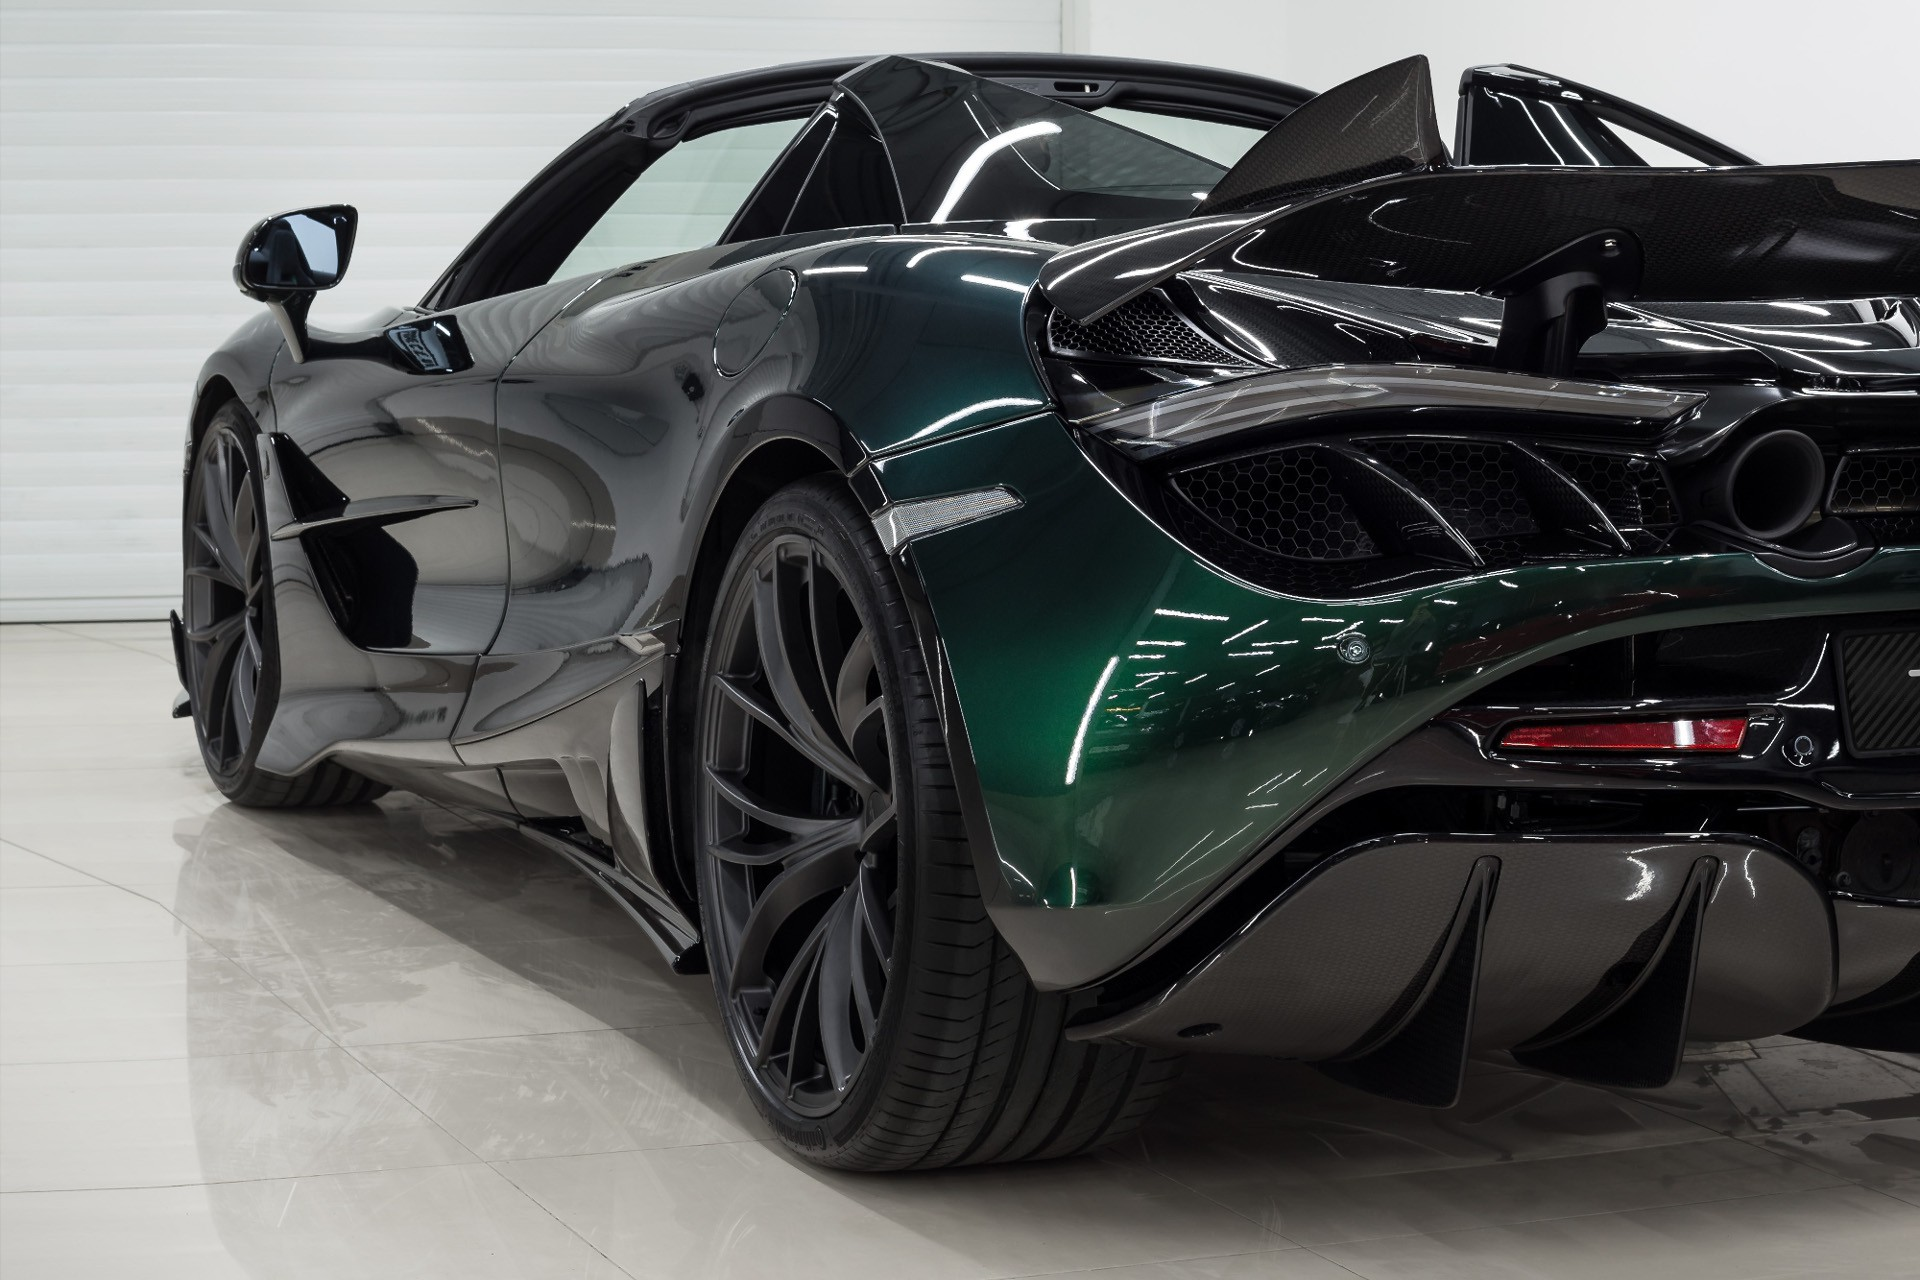 McLaren-720S-Spider-Fury-by-TopCar-for-sale-23